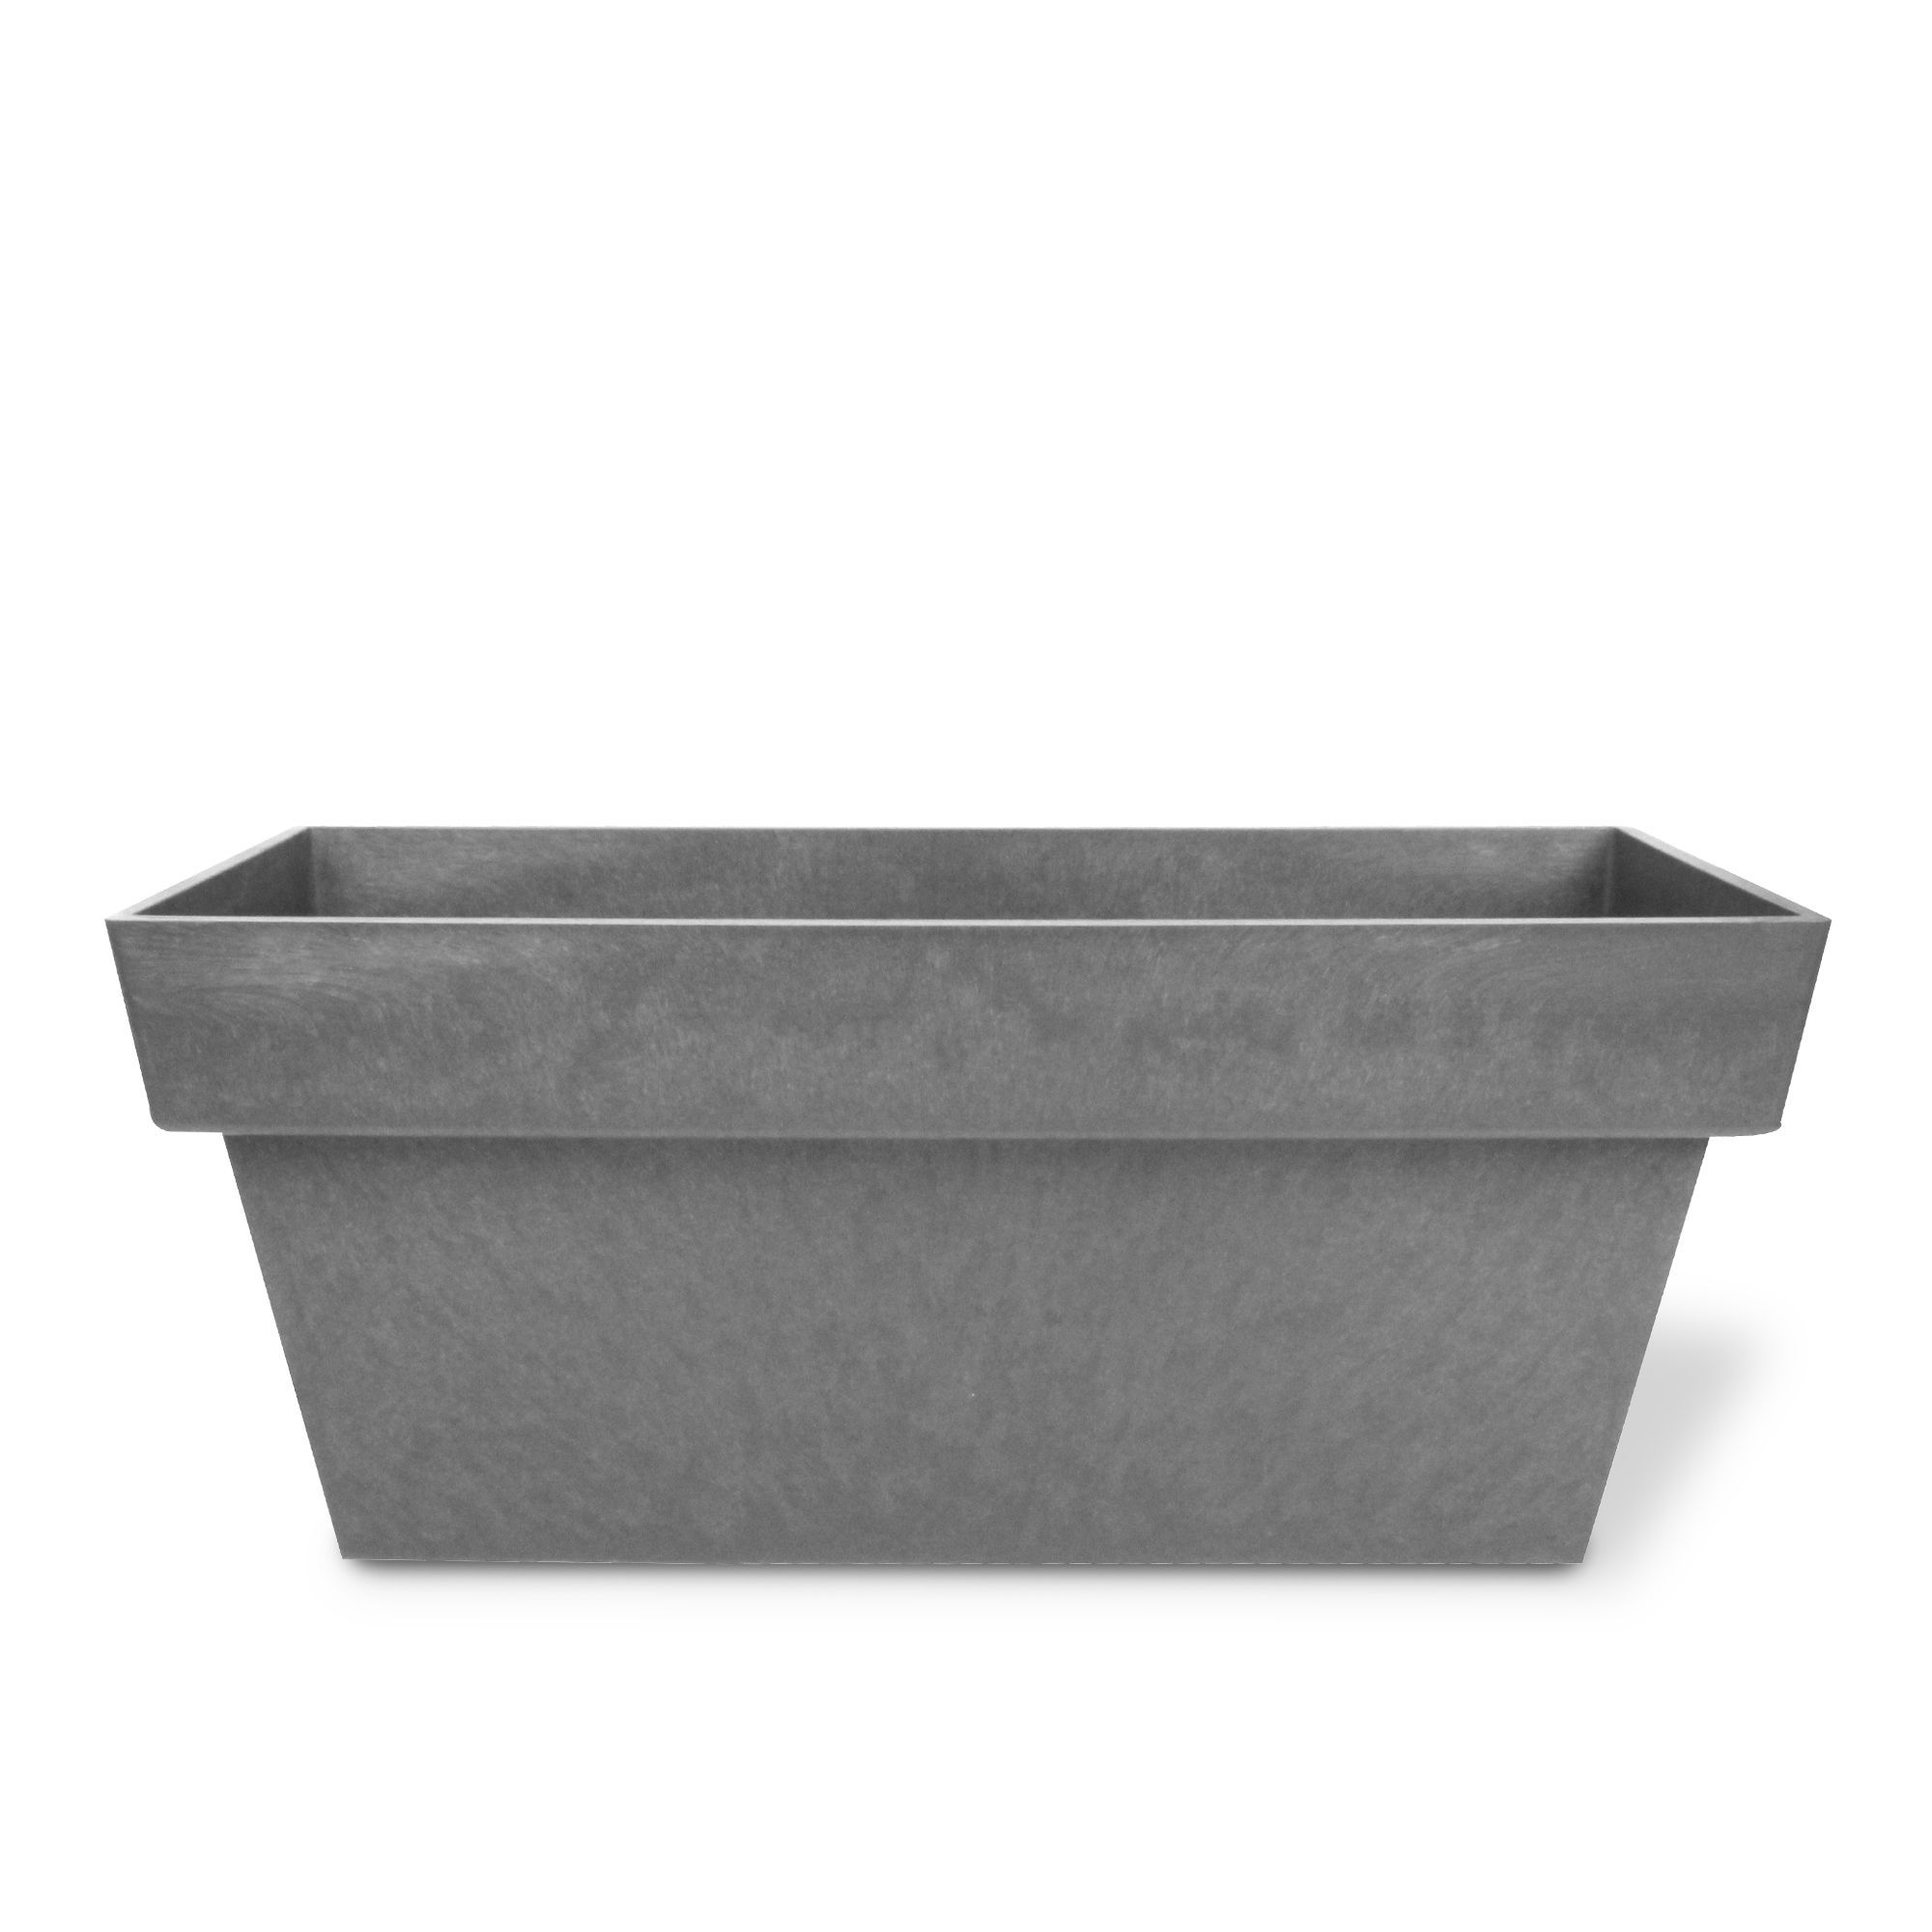 Jardini¨re 80x35x35cm ANTHRACITE Anthracite Orion Cache pots